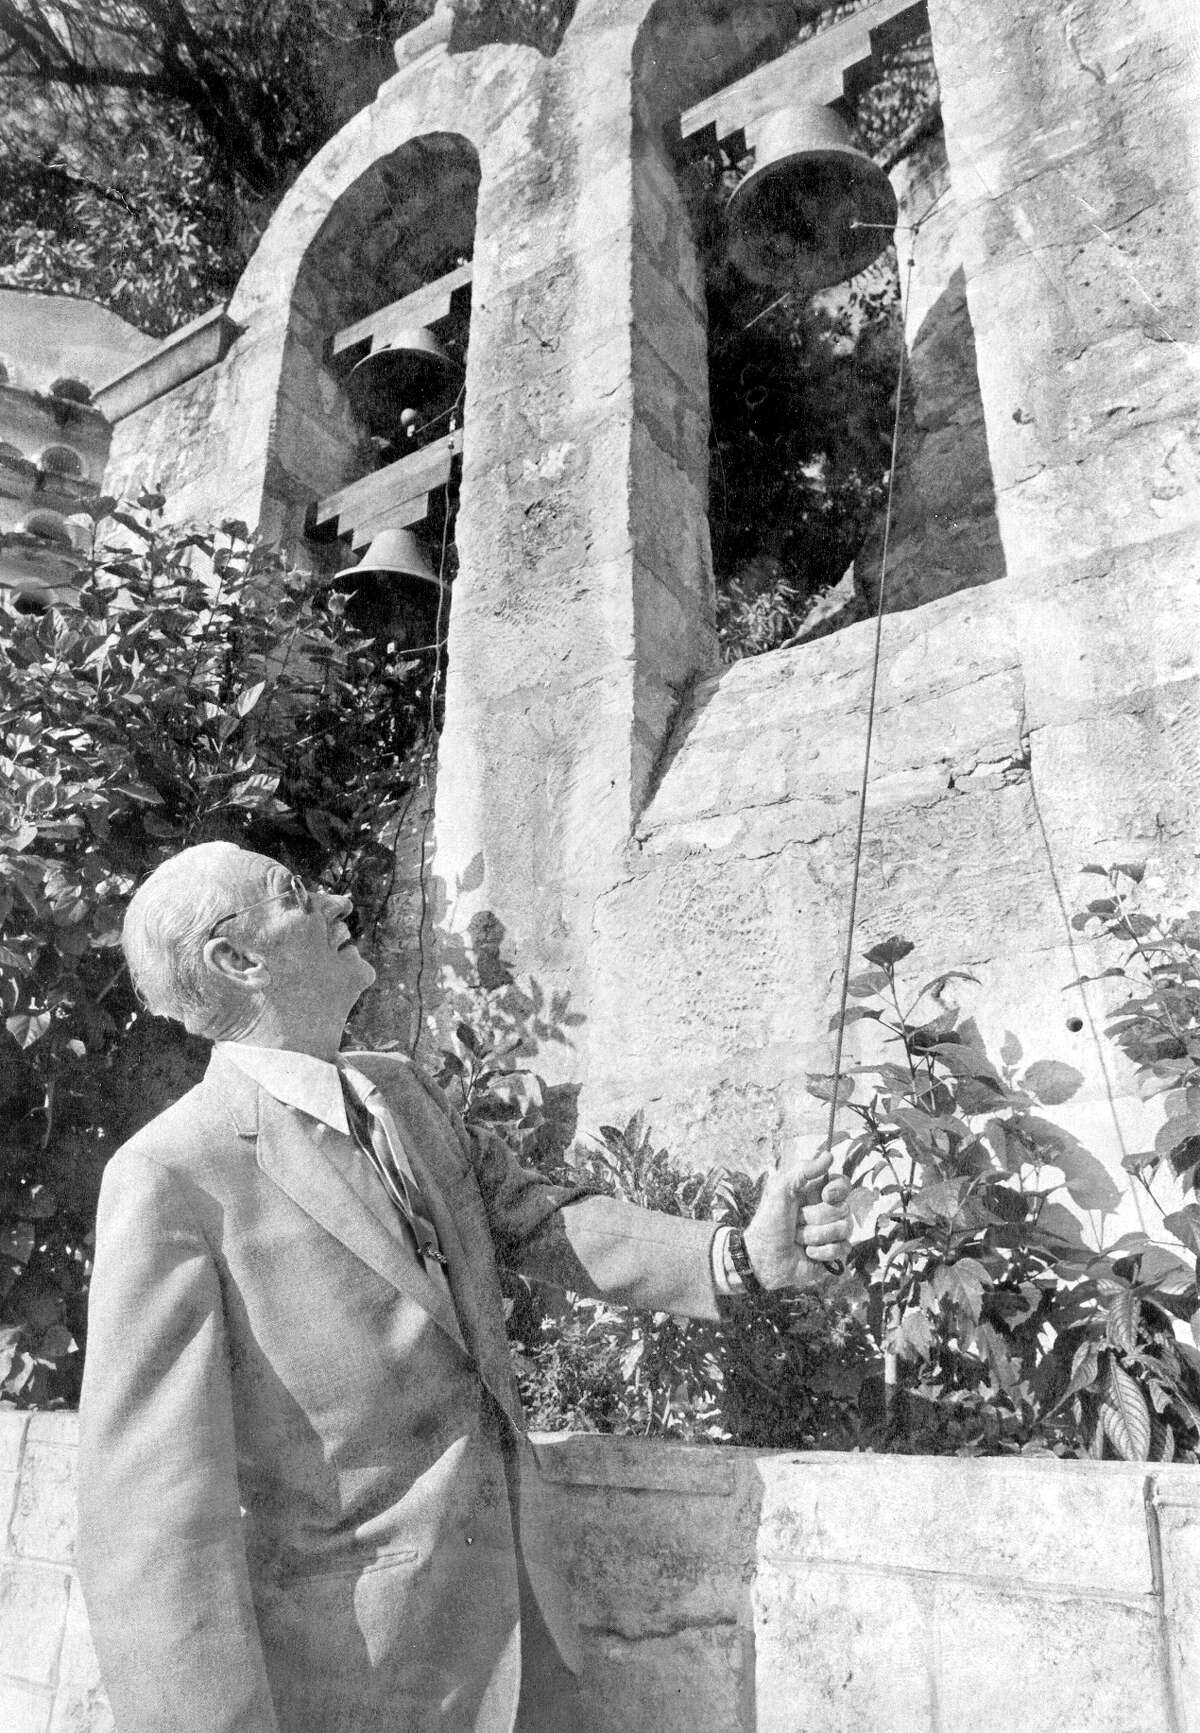 Robert H. H. Hugman was the architect who designed the River Walk and is considered by many the most important designer in San Antonio history.